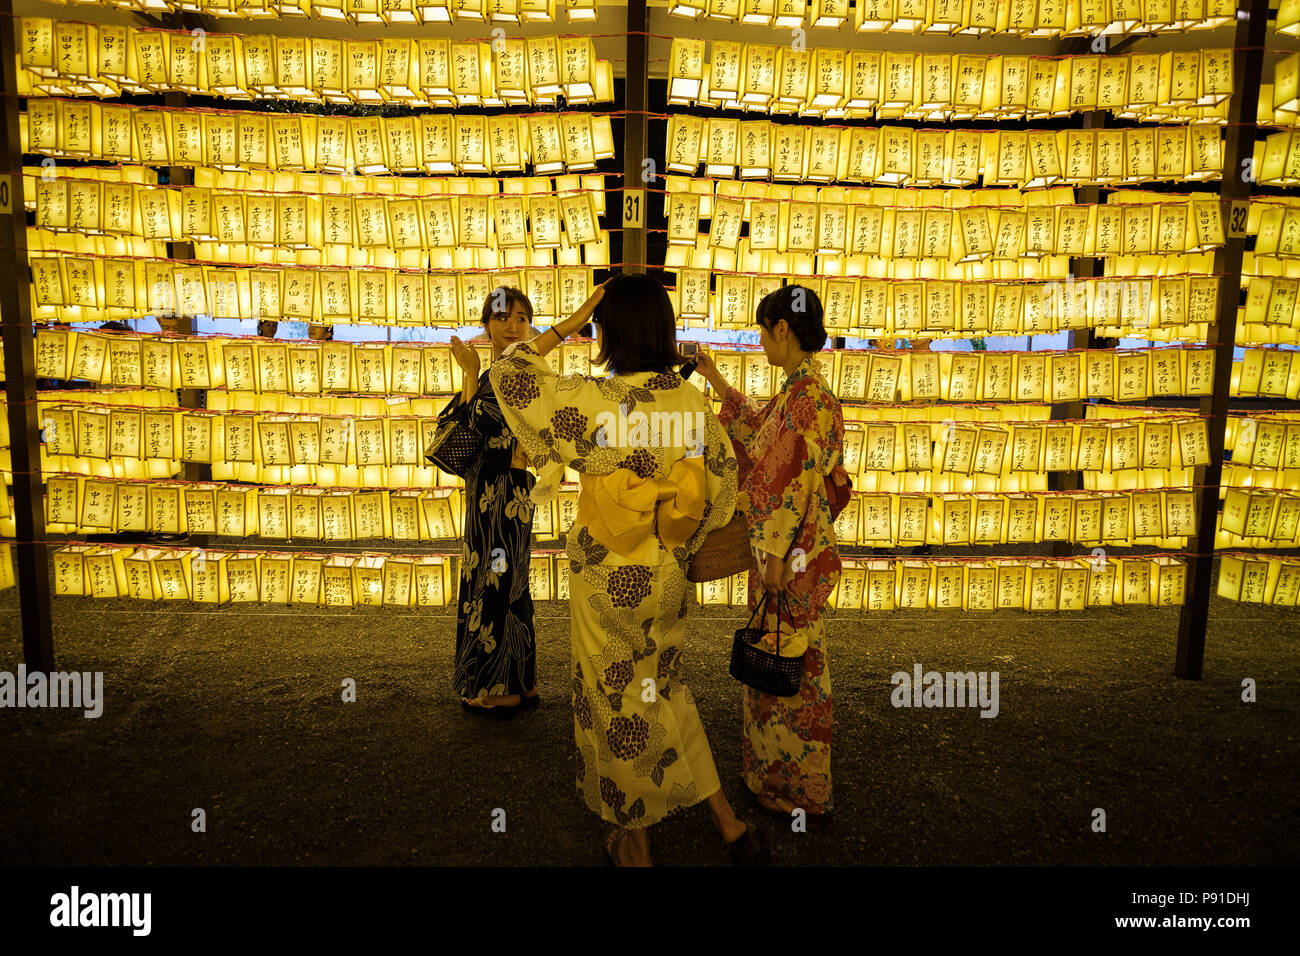 Tokyo, Japan, 13 July 2018. Young ladies wearing yukata (traditional kimono for summer) enjoy paper lanterns during the Mitama Matsuri summer festival at Yasukuni Shrine on July 13, 2018 in Tokyo, Japan. The four-day traditional festival takes place during Tokyo's Bon period in July attracting about 300,000 visitors, according to the shrine. July 13, 2018 Credit: Nicolas Datiche/AFLO/Alamy Live News - Stock Image